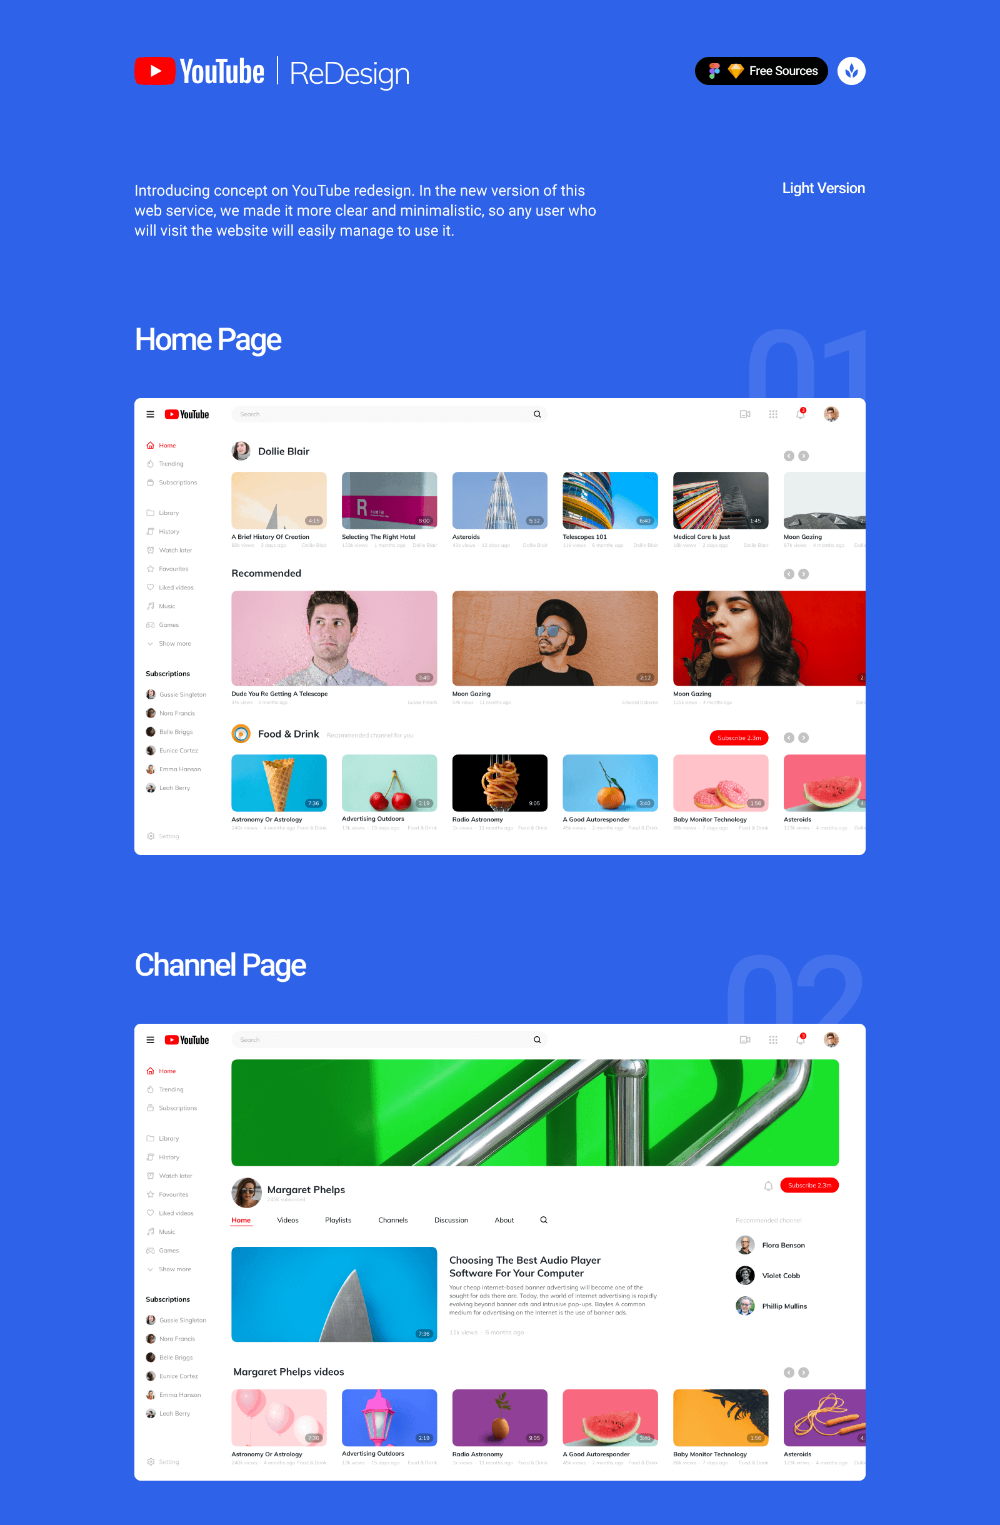 Youtube System Design : youtube, system, design, YouTube, Redesign, Concept, Uistore.design, Apps,, Interface